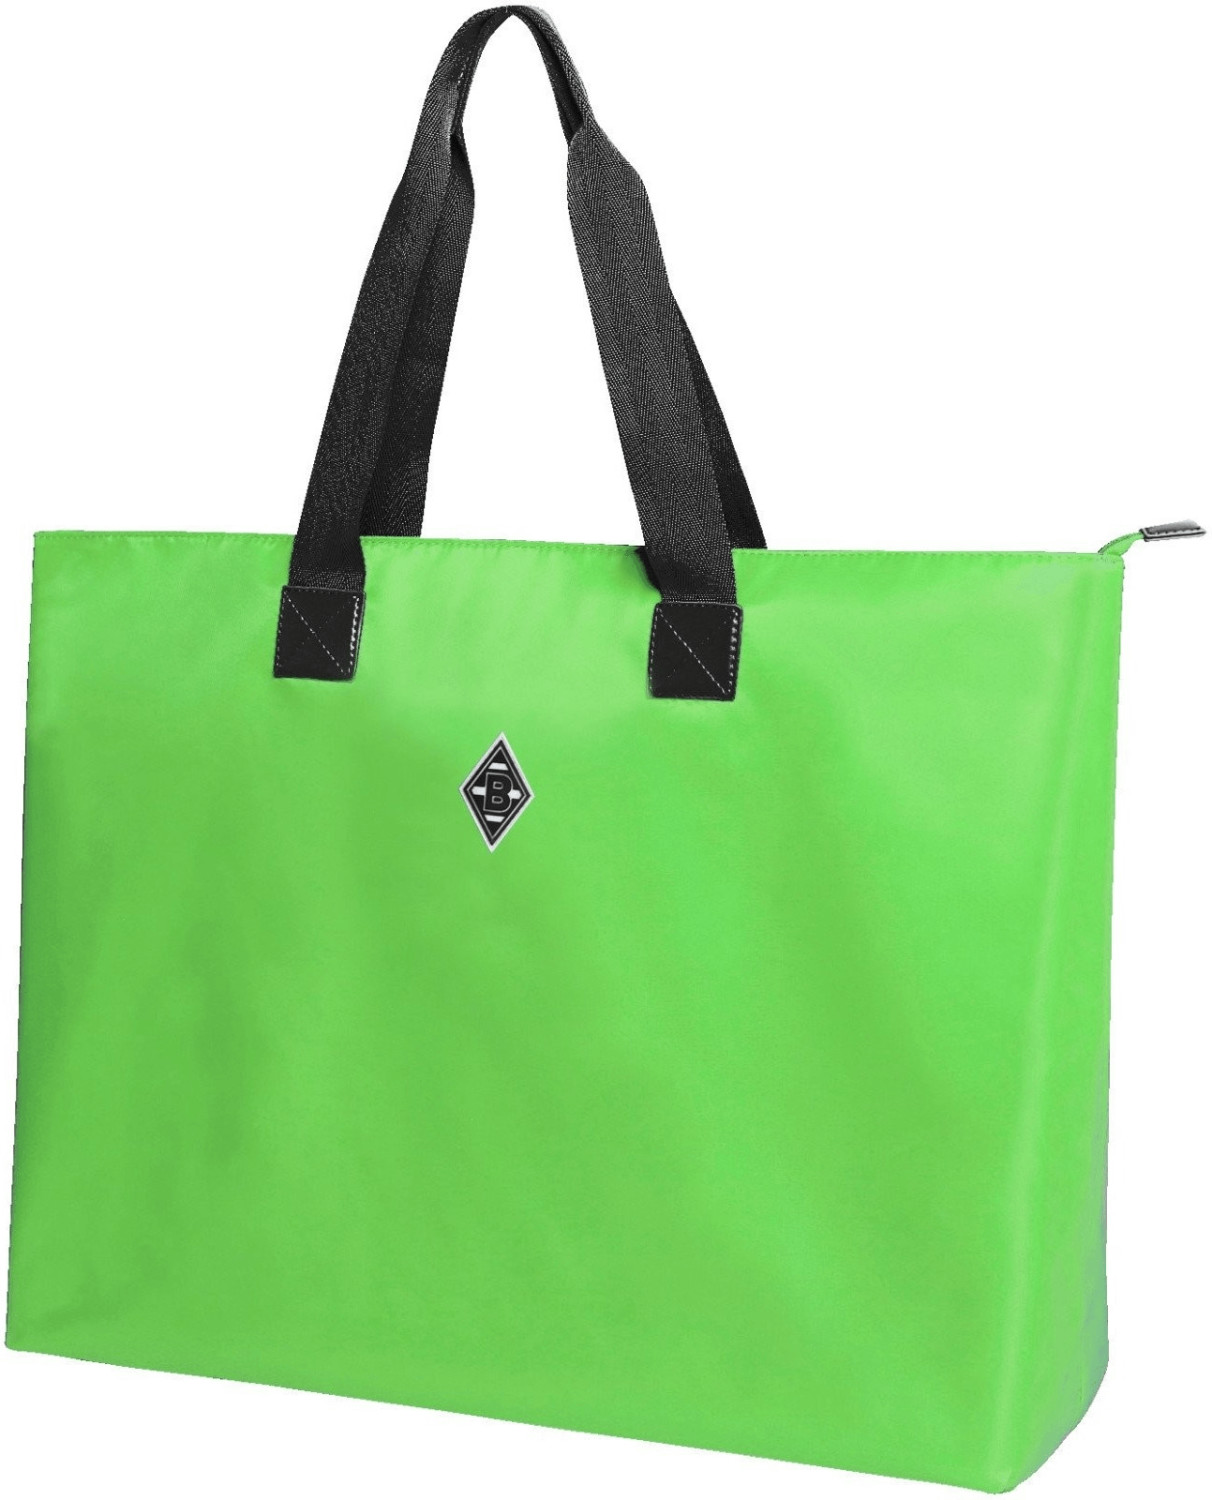 Markenmerch Shopping Bag Borussia Mönchengladba...